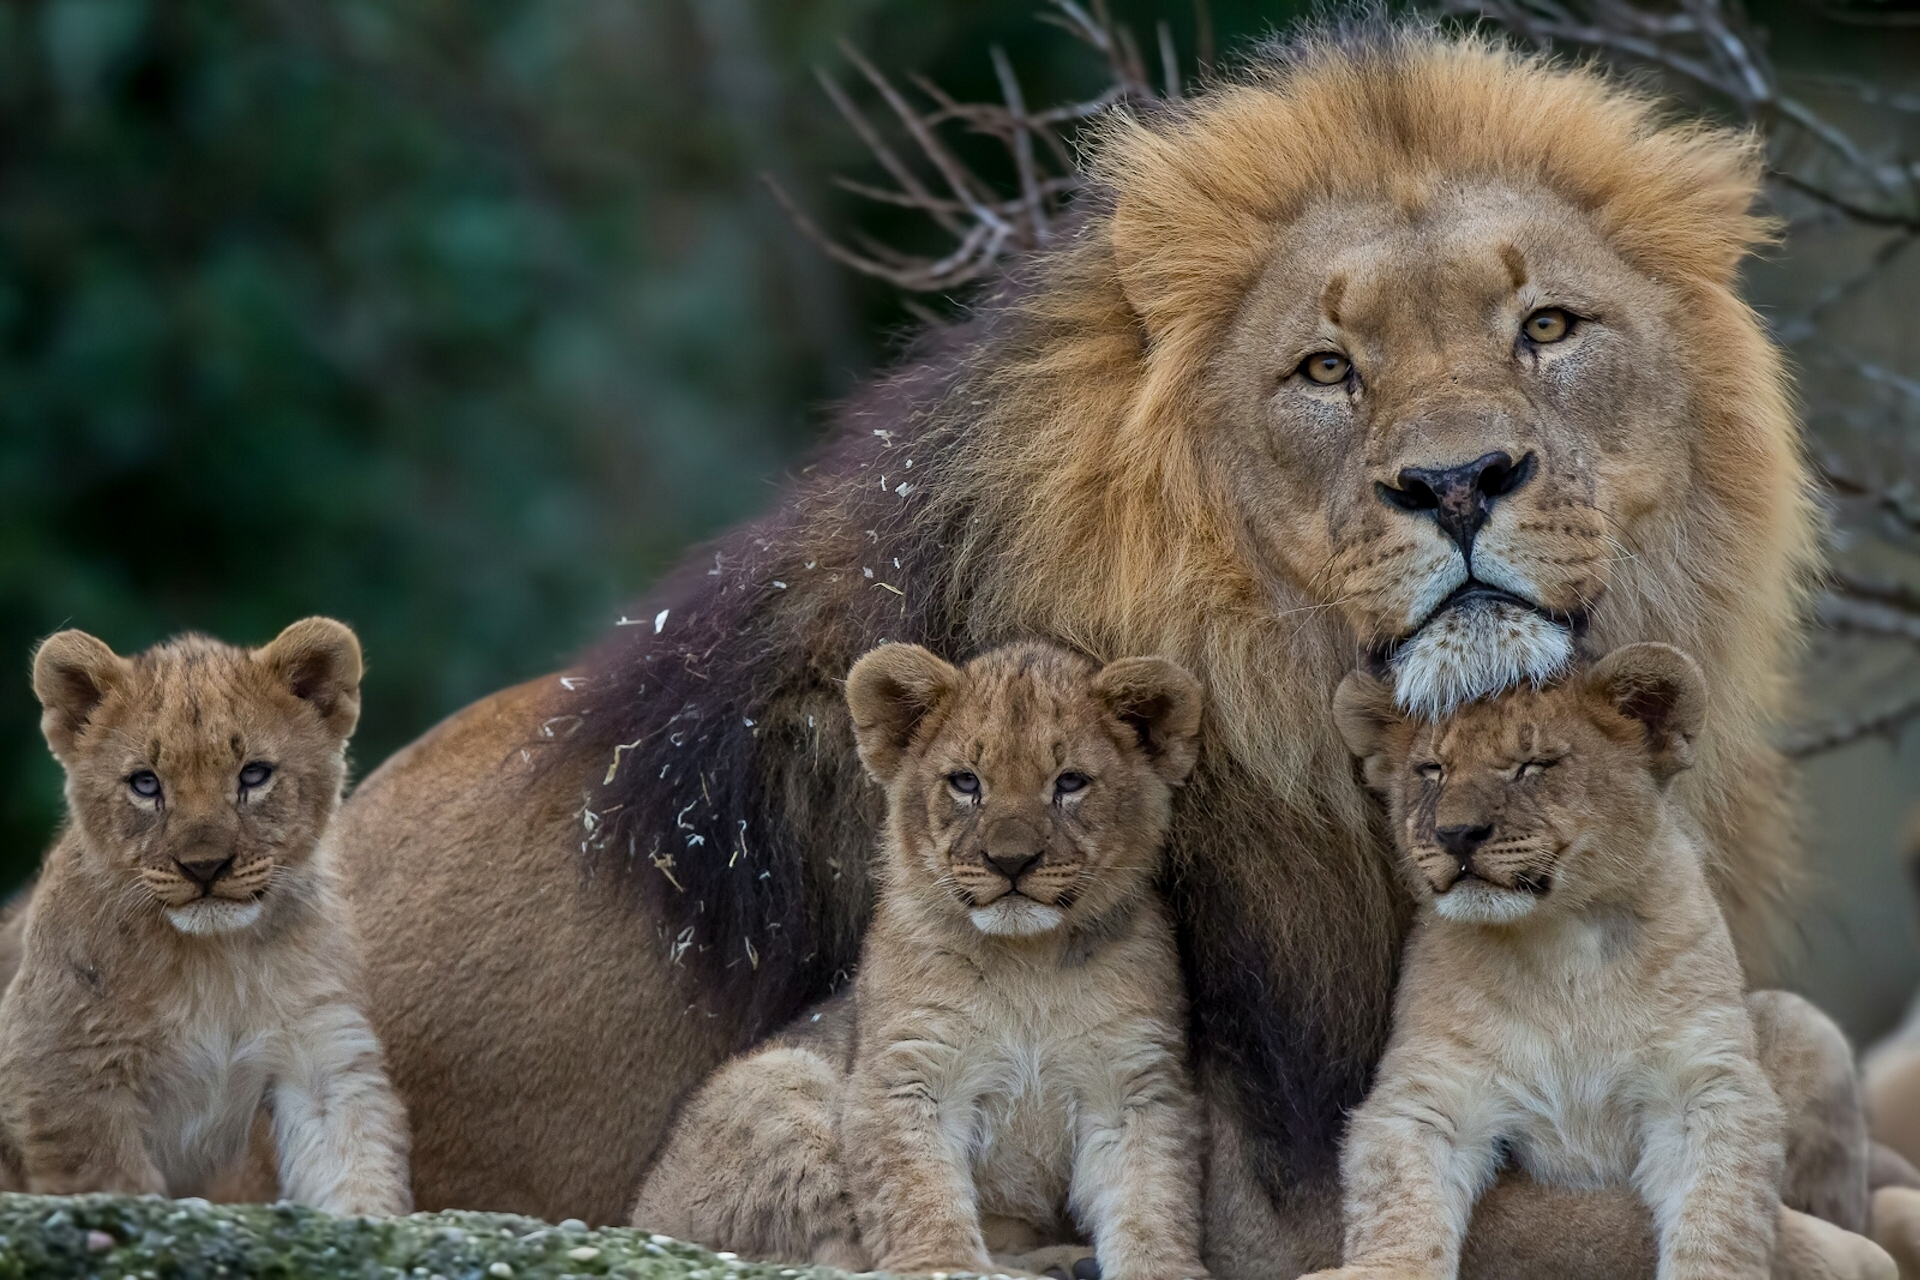 109529 download wallpaper Animals, Predators, Young, Lion, Lioness, Family, Cubs screensavers and pictures for free